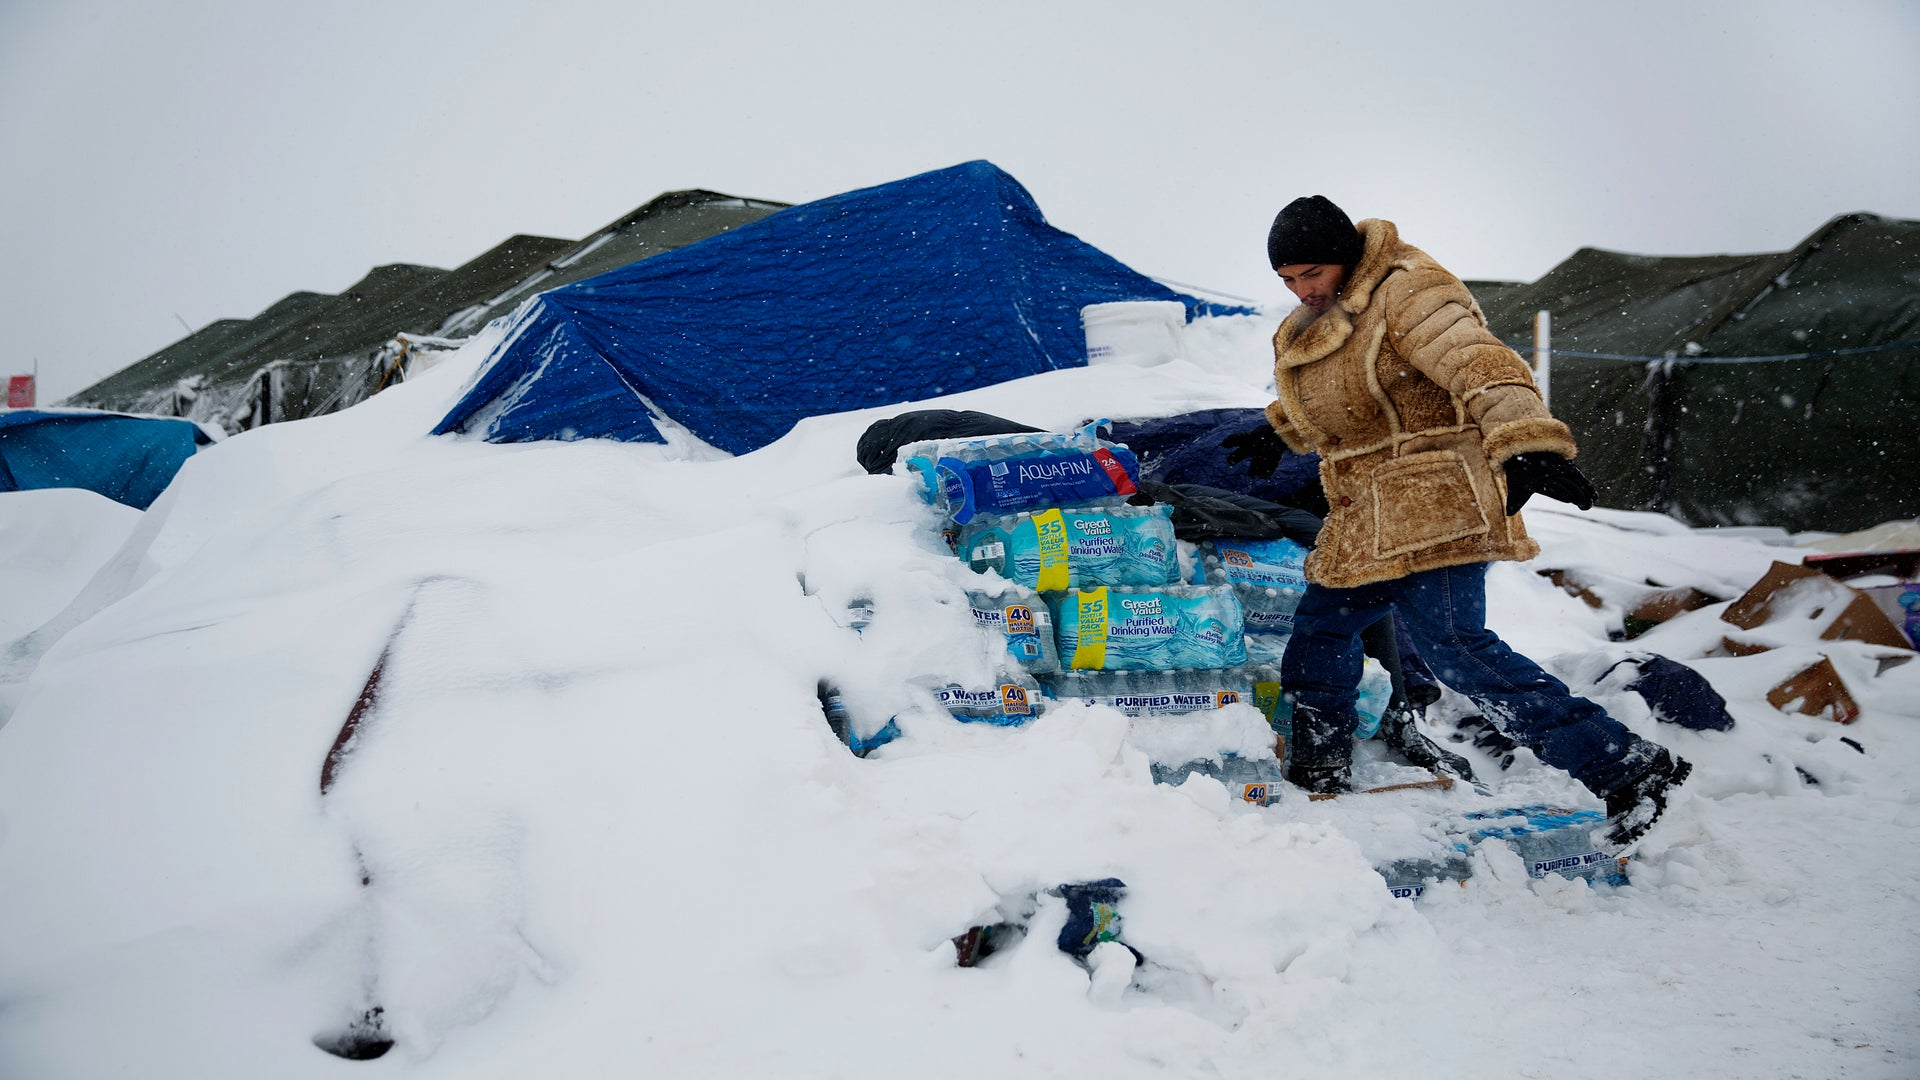 Cold Weather Is the Latest Challenge Facing Protestors at the North Dakota Pipeline